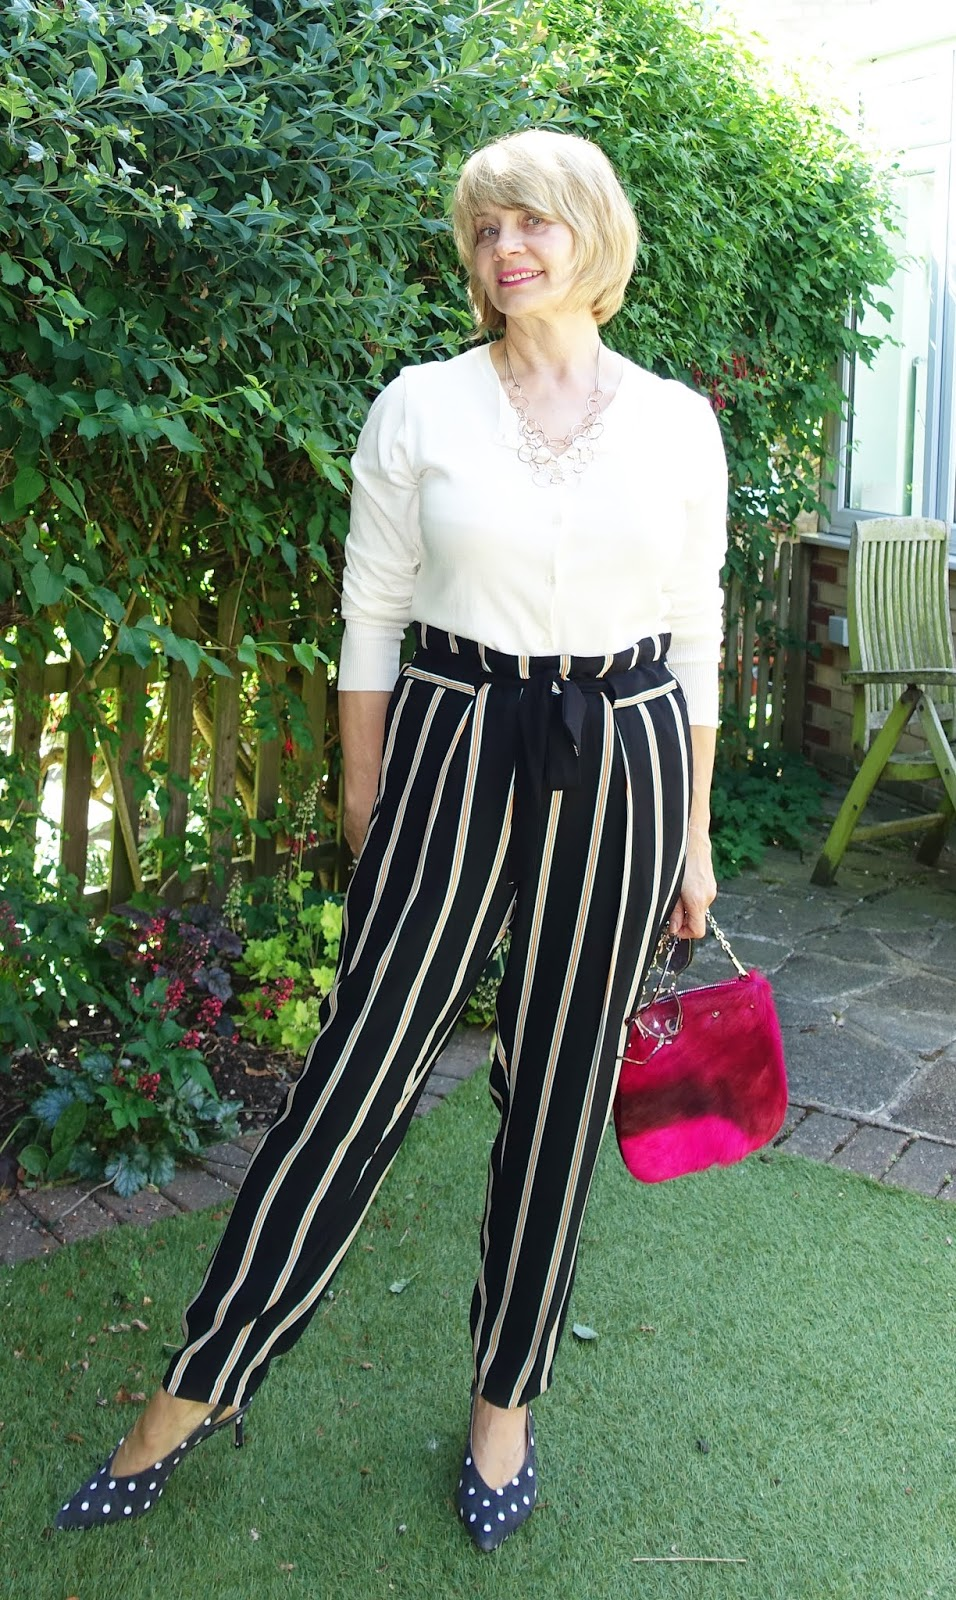 Striped trousers worn with polka doe kitten heels and a white cardigan